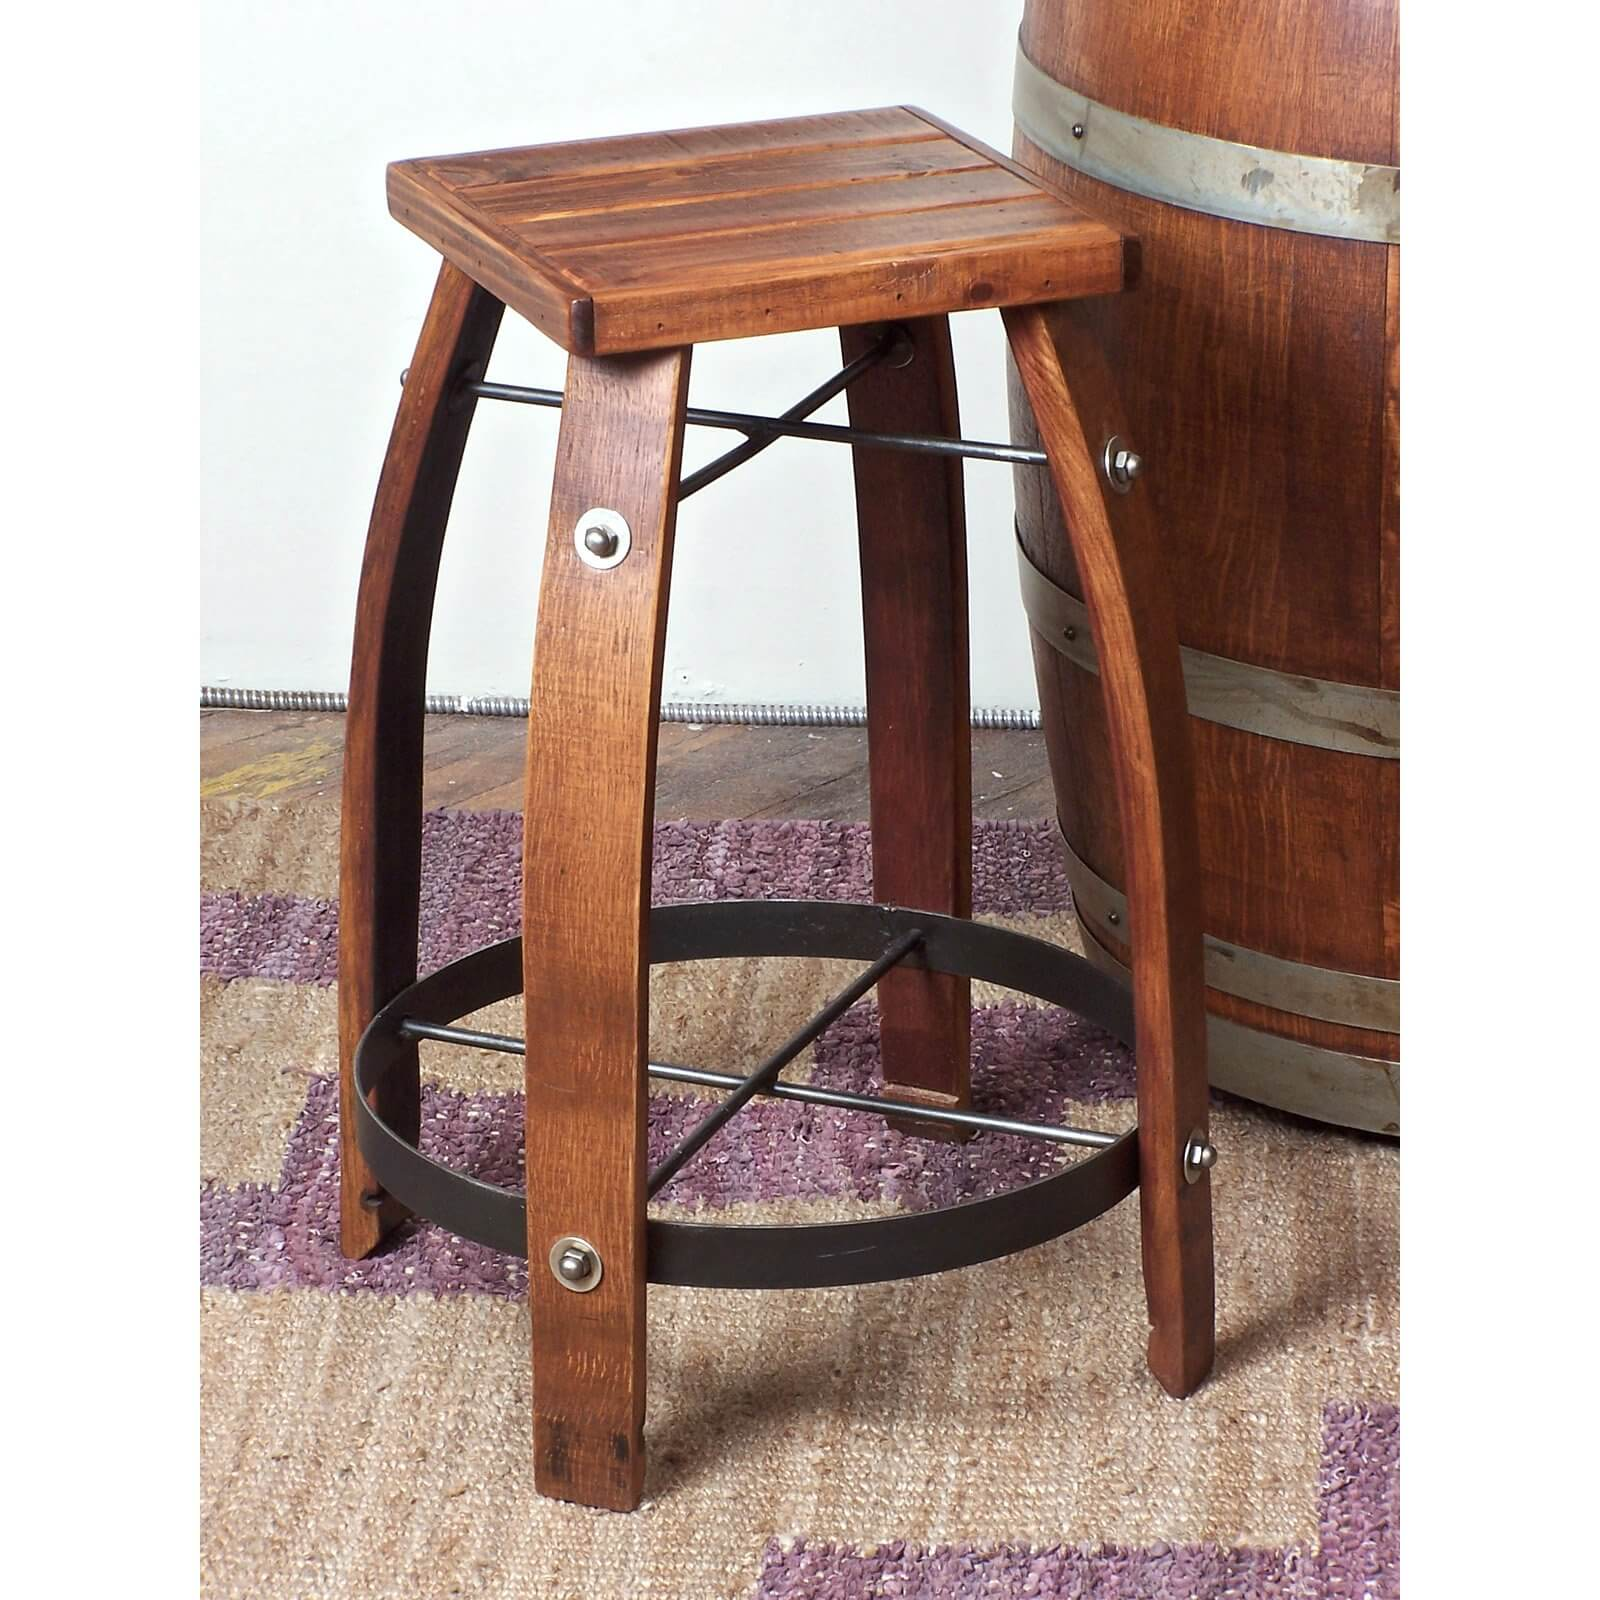 Wood stool designed in the barrel style with square seat.